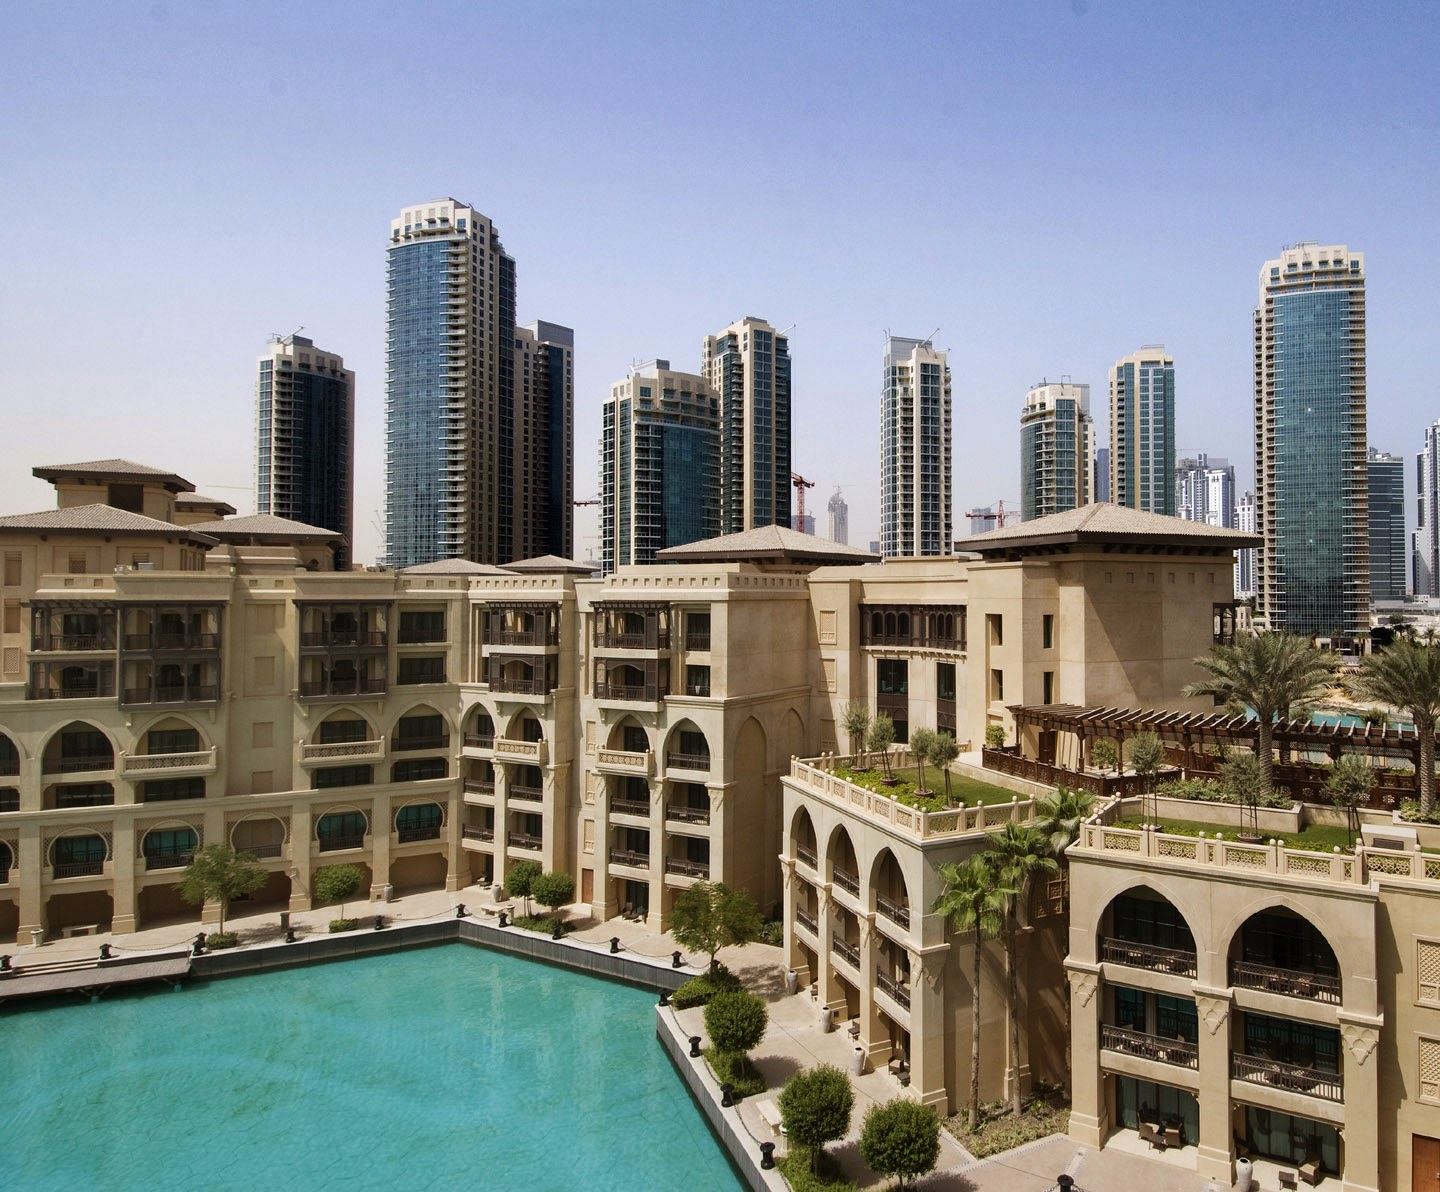 apartment for rent, apartment rent, apartment rentals, cheap office space, office for rent dubai, office for rent in dubai, office rent, office space for rent, office space for rent in dubai, rent apartment,